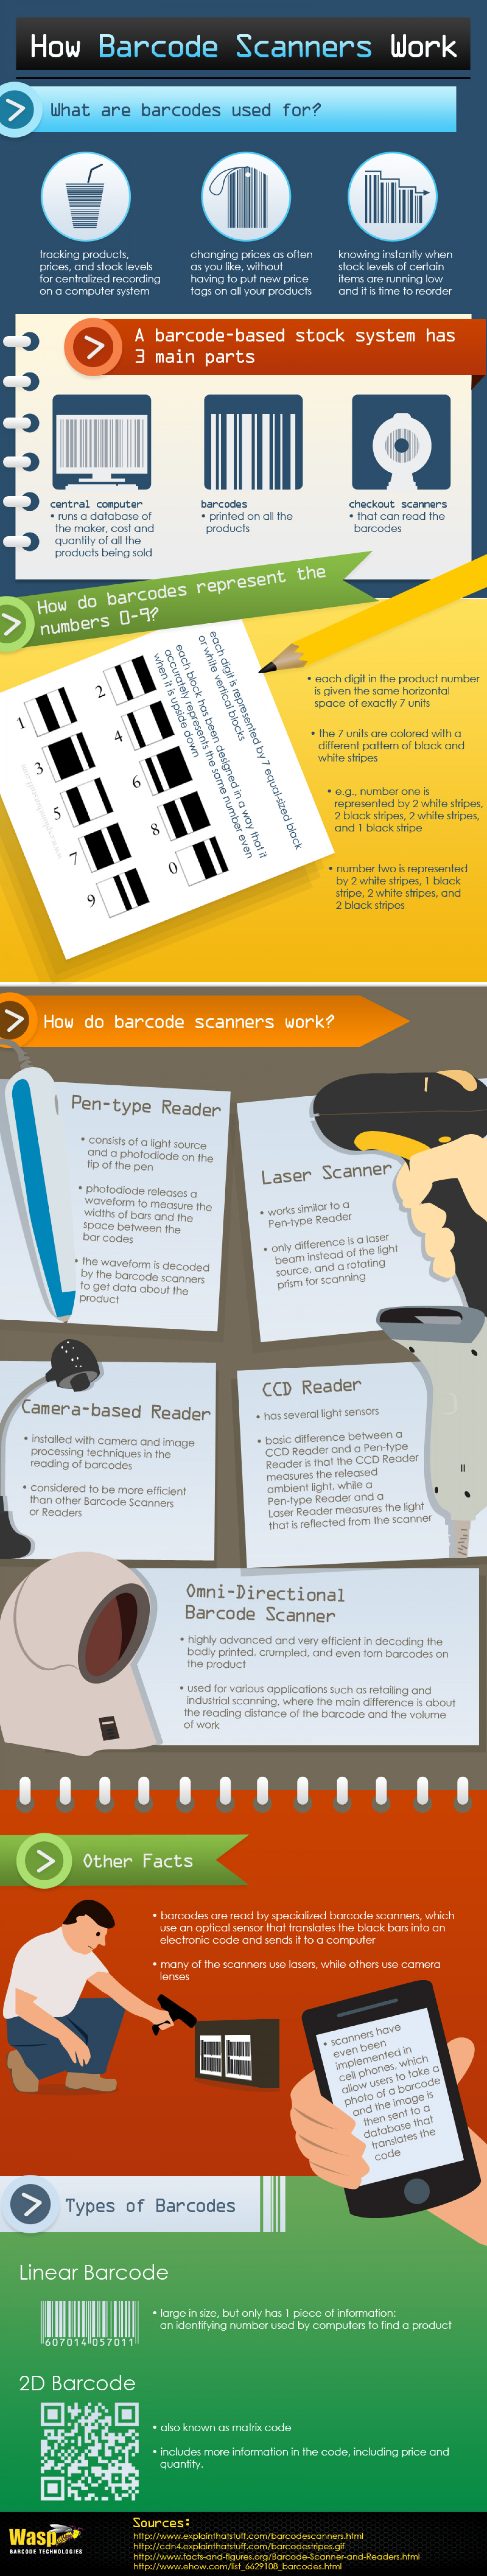 How Barcode Scanners Work Infographic